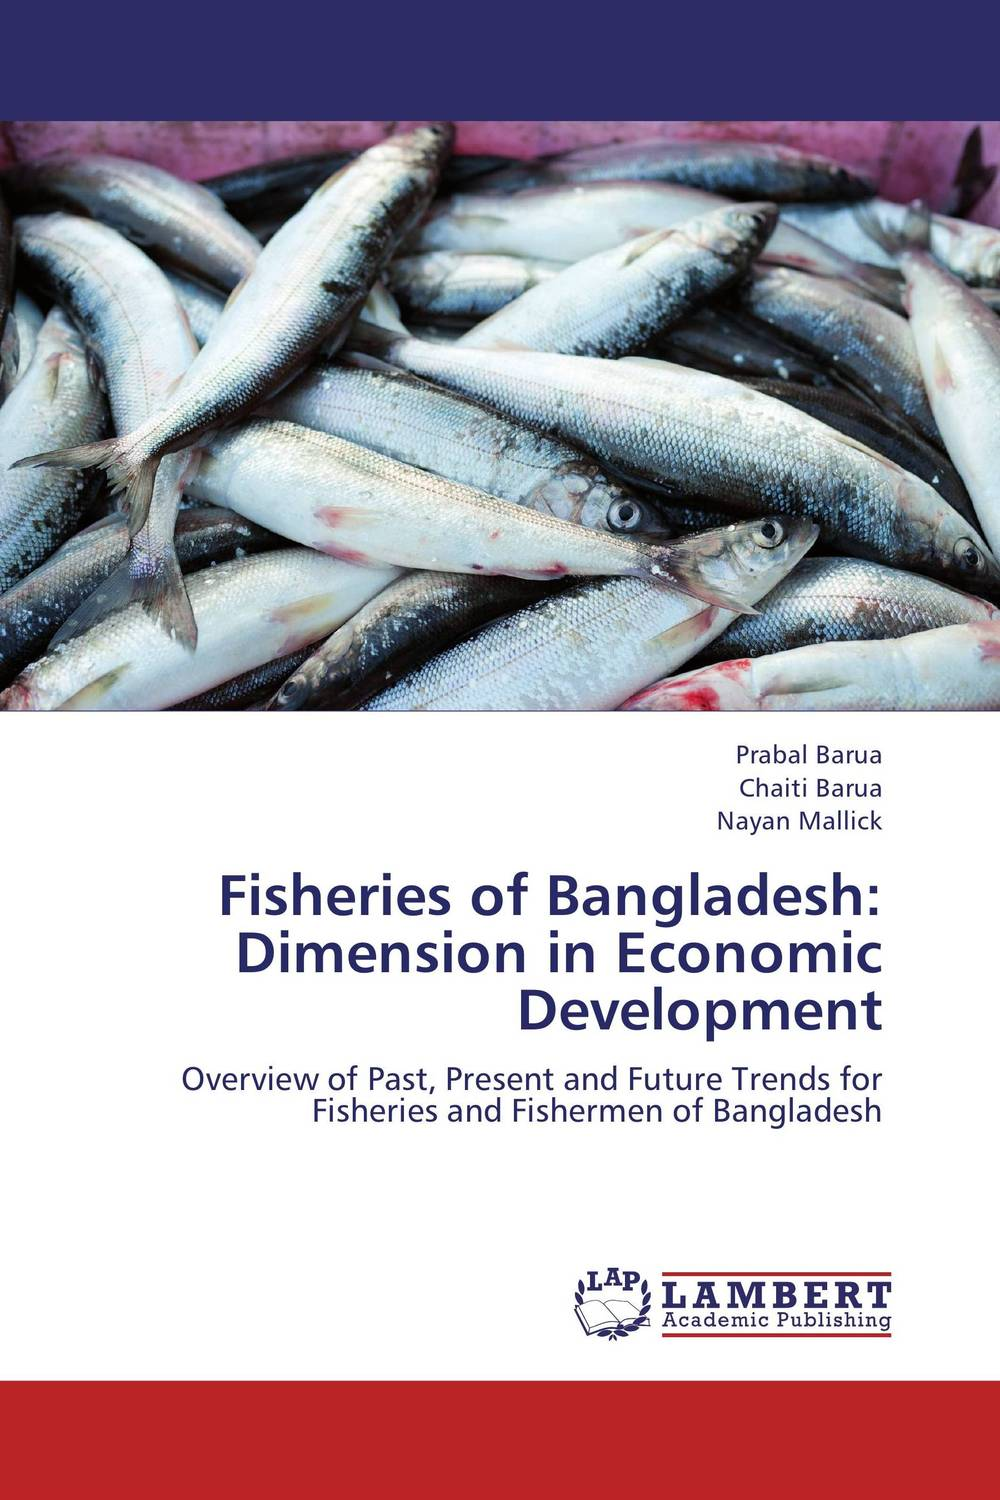 Fisheries of Bangladesh: Dimension in Economic Development institutional analysis of fisheries co management